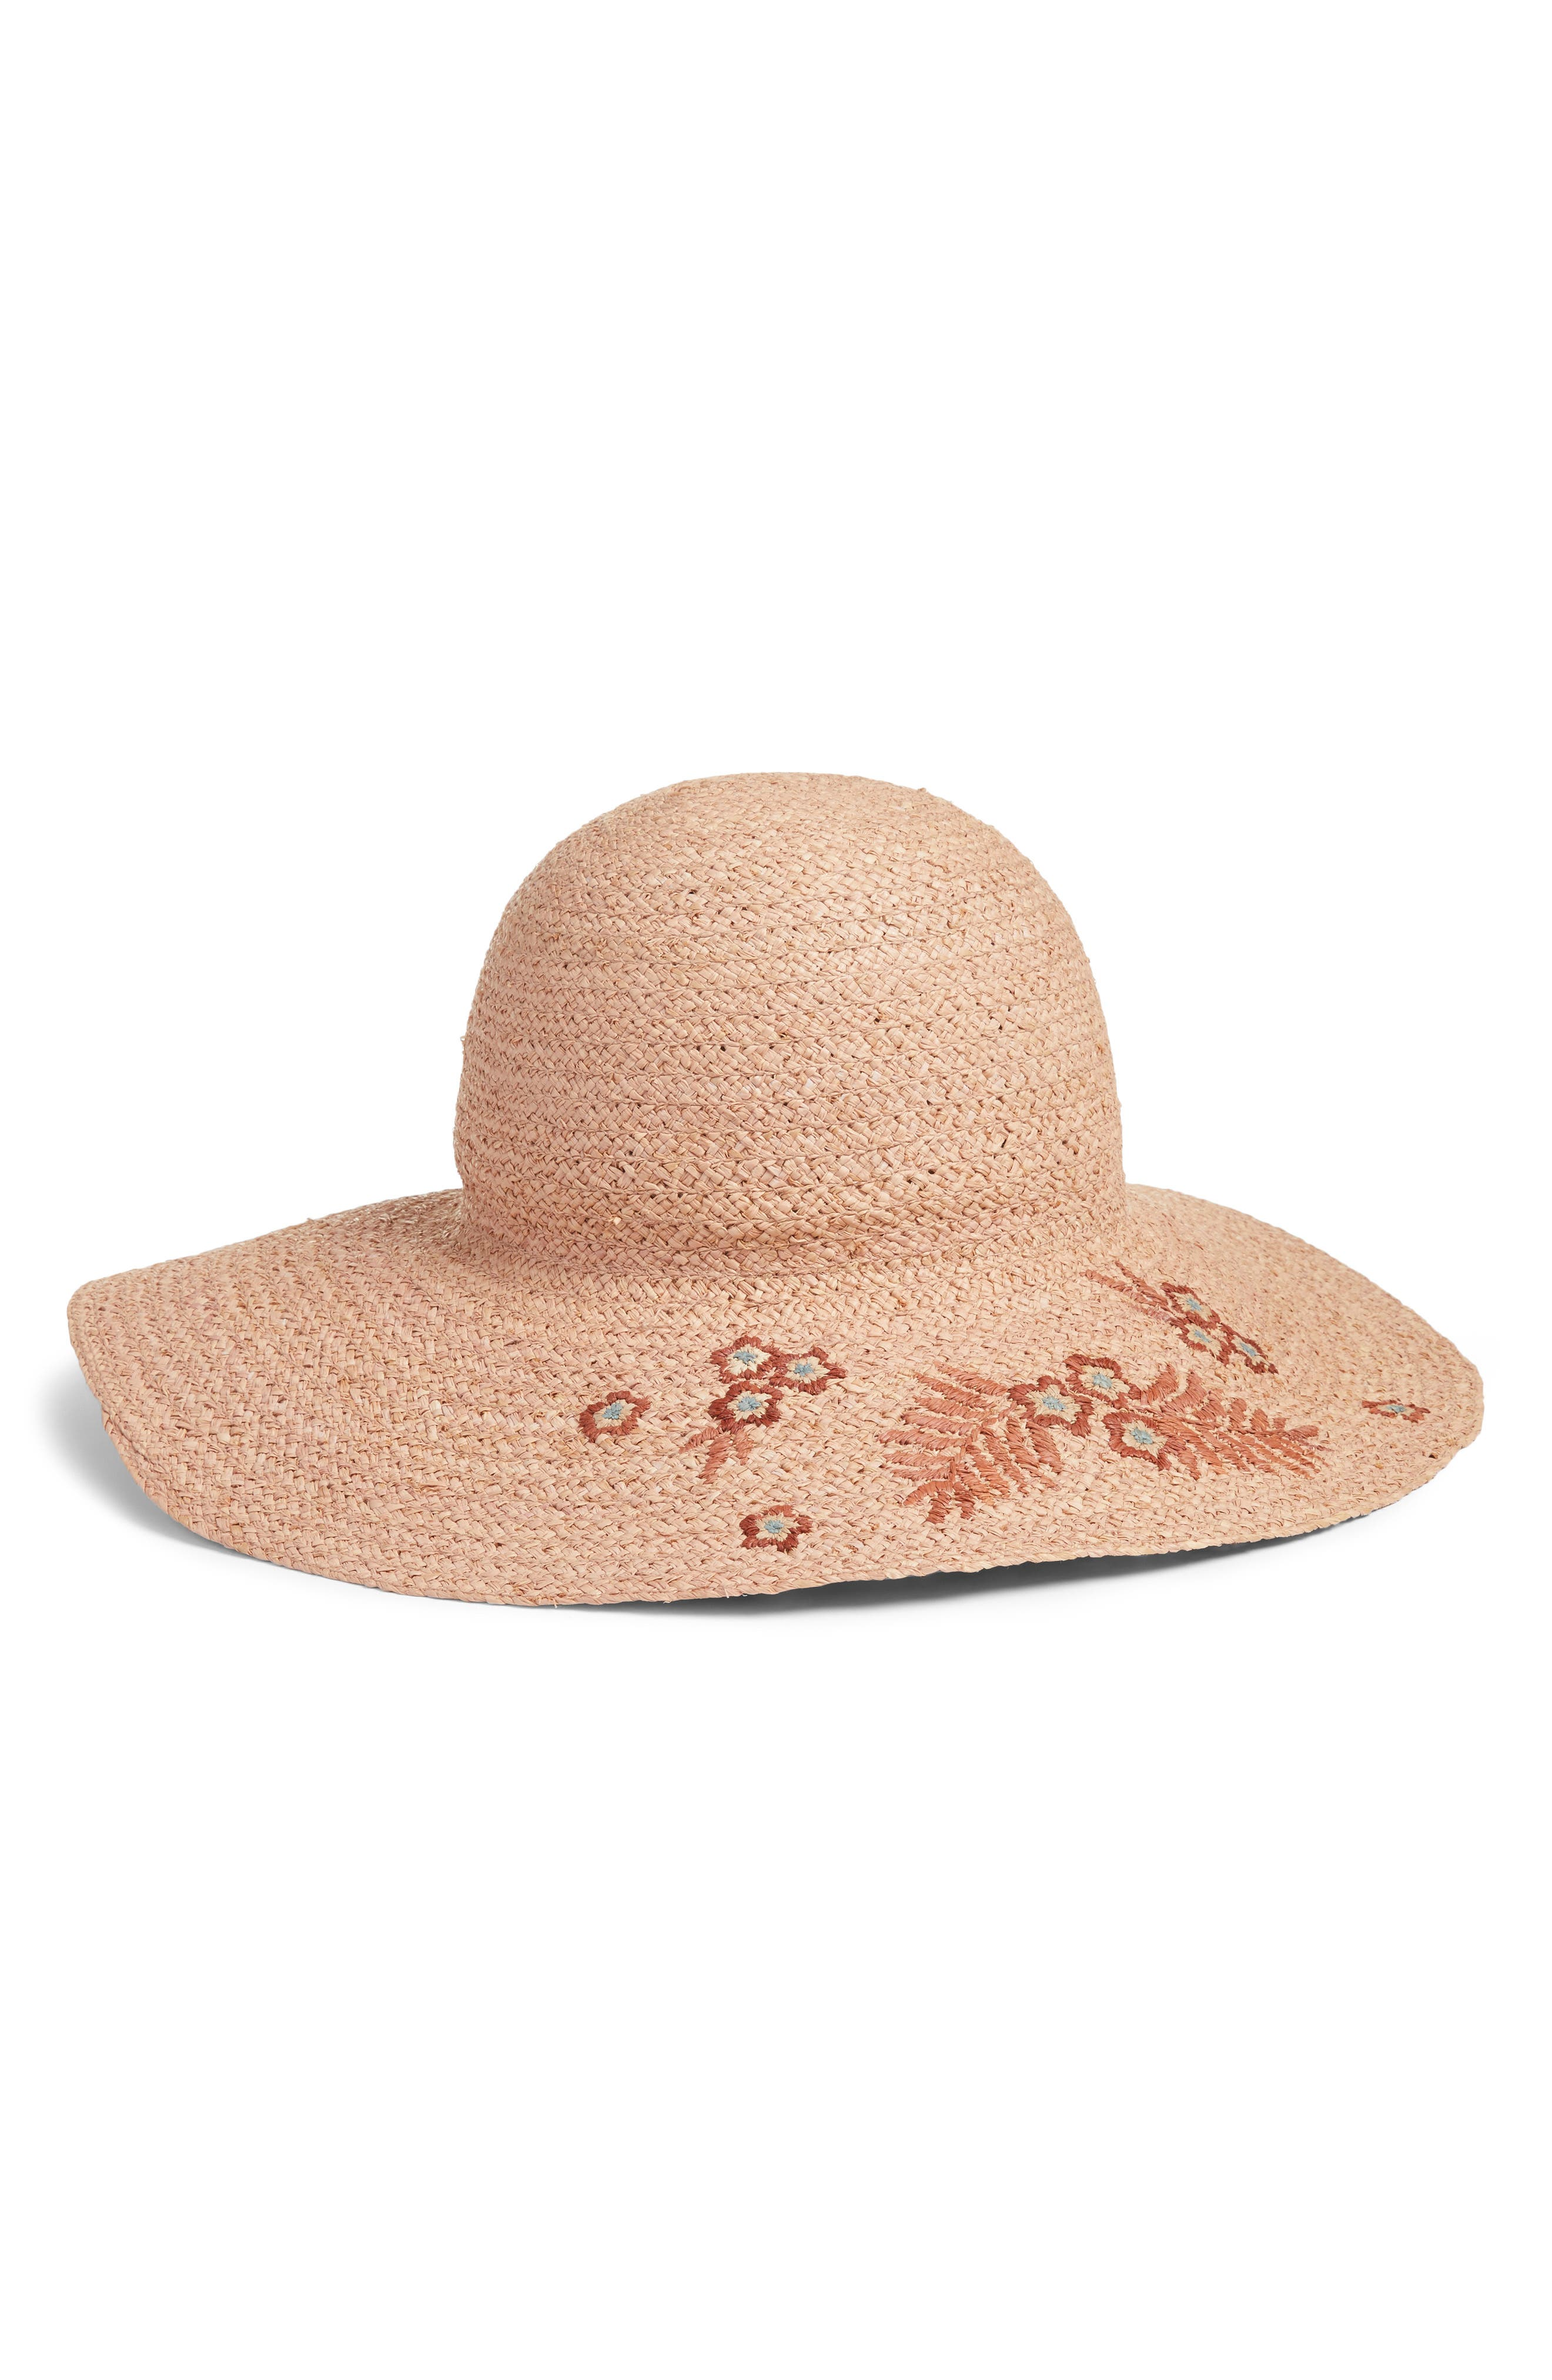 Flower Embroidered Raffia Hat,                         Main,                         color, 021